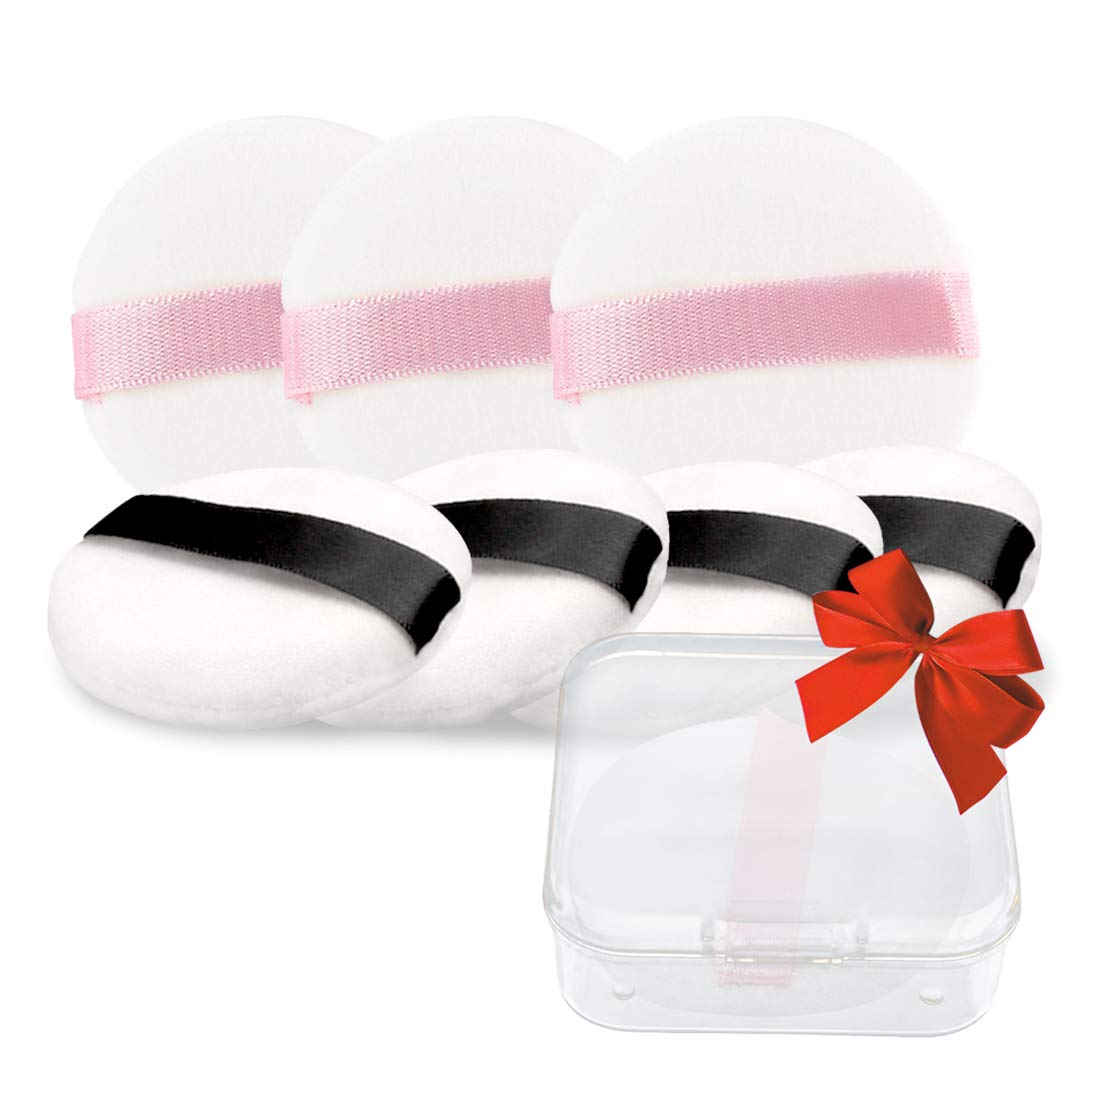 Kalevel 8pcs Cosmetic Powder Puff Round Makeup Soft Sponge 2.2in Small Velour Face Body Powder Puffs Foundation Applicator Sponge with Handle and Portable Case for Home and Travel (Black + Pink Set)